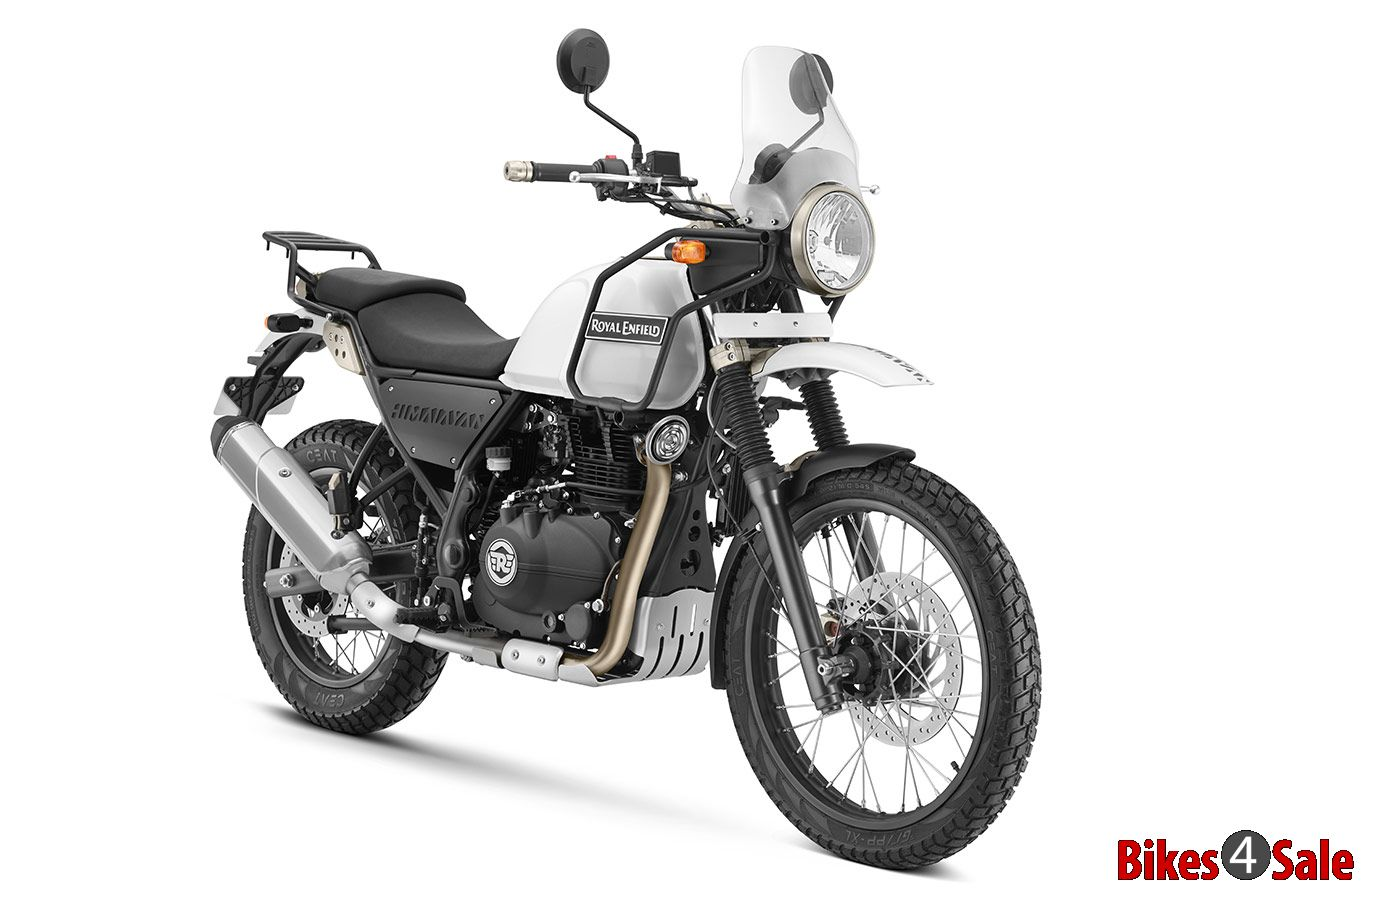 Himalayan 410cc Adventure Bike